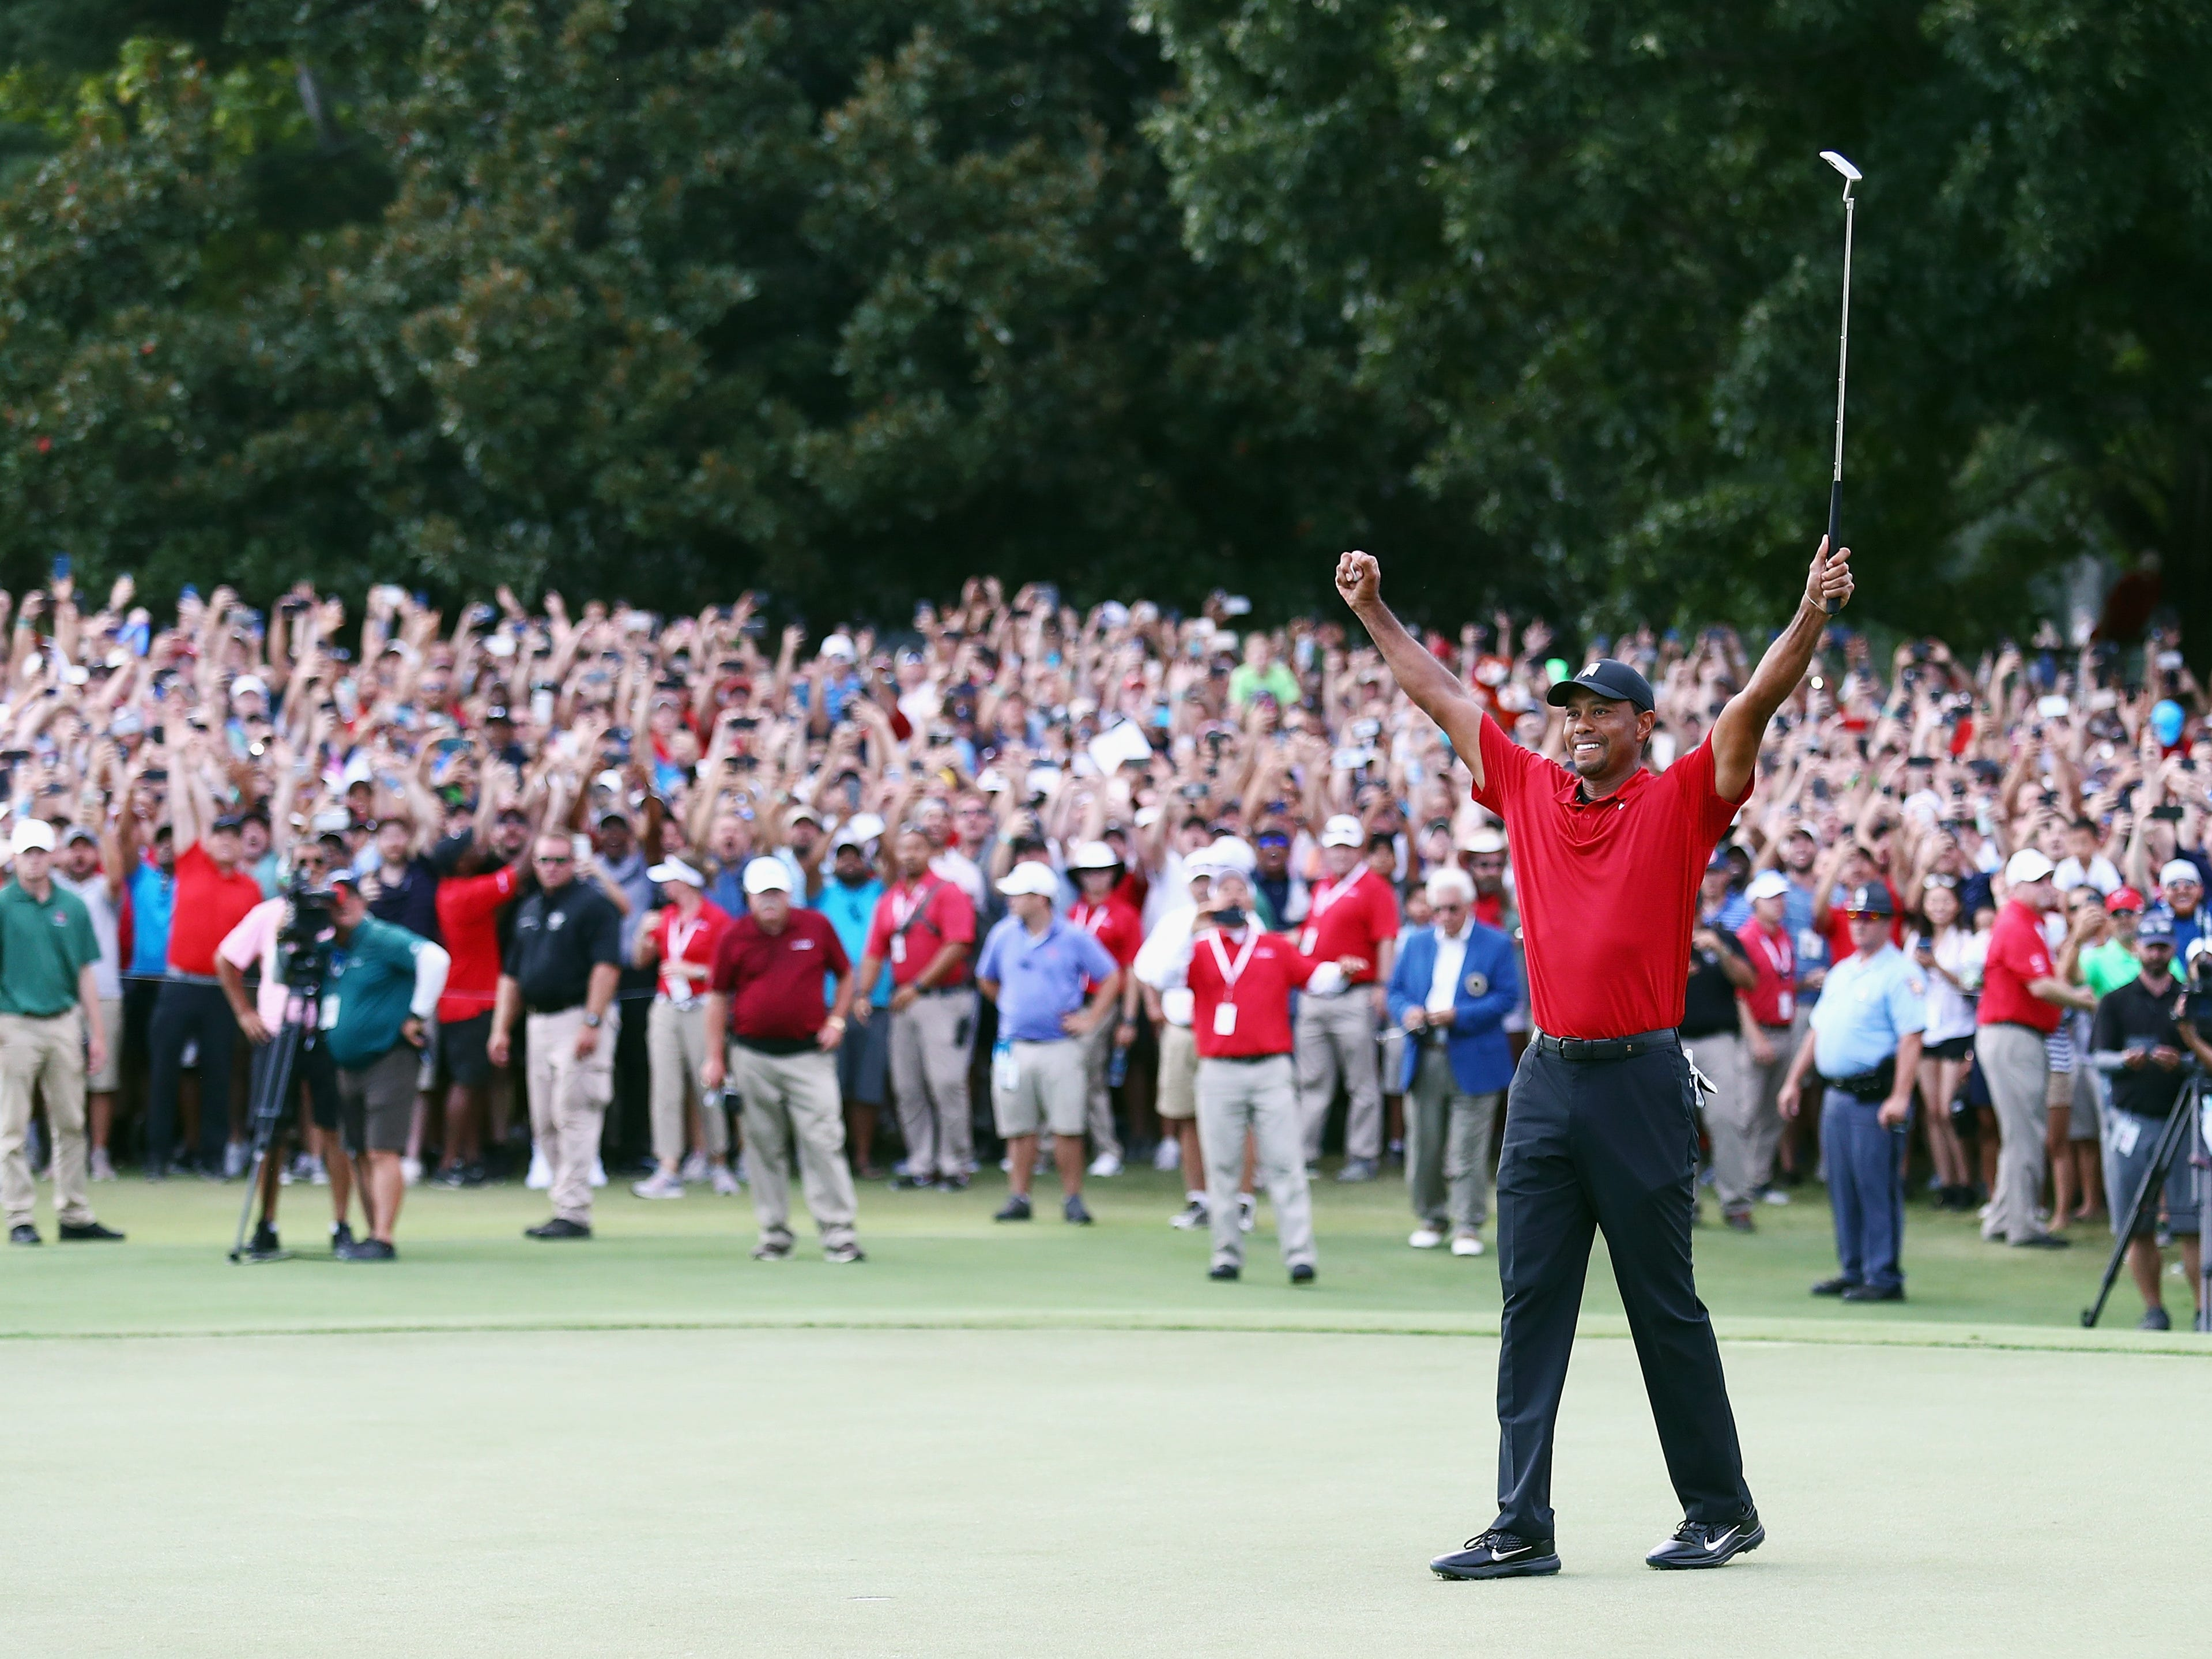 Tiger Woods celebrates making a par on the 18th green to win the TOUR Championship at East Lake Golf Club on September 23, 2018 in Atlanta, Georgia.